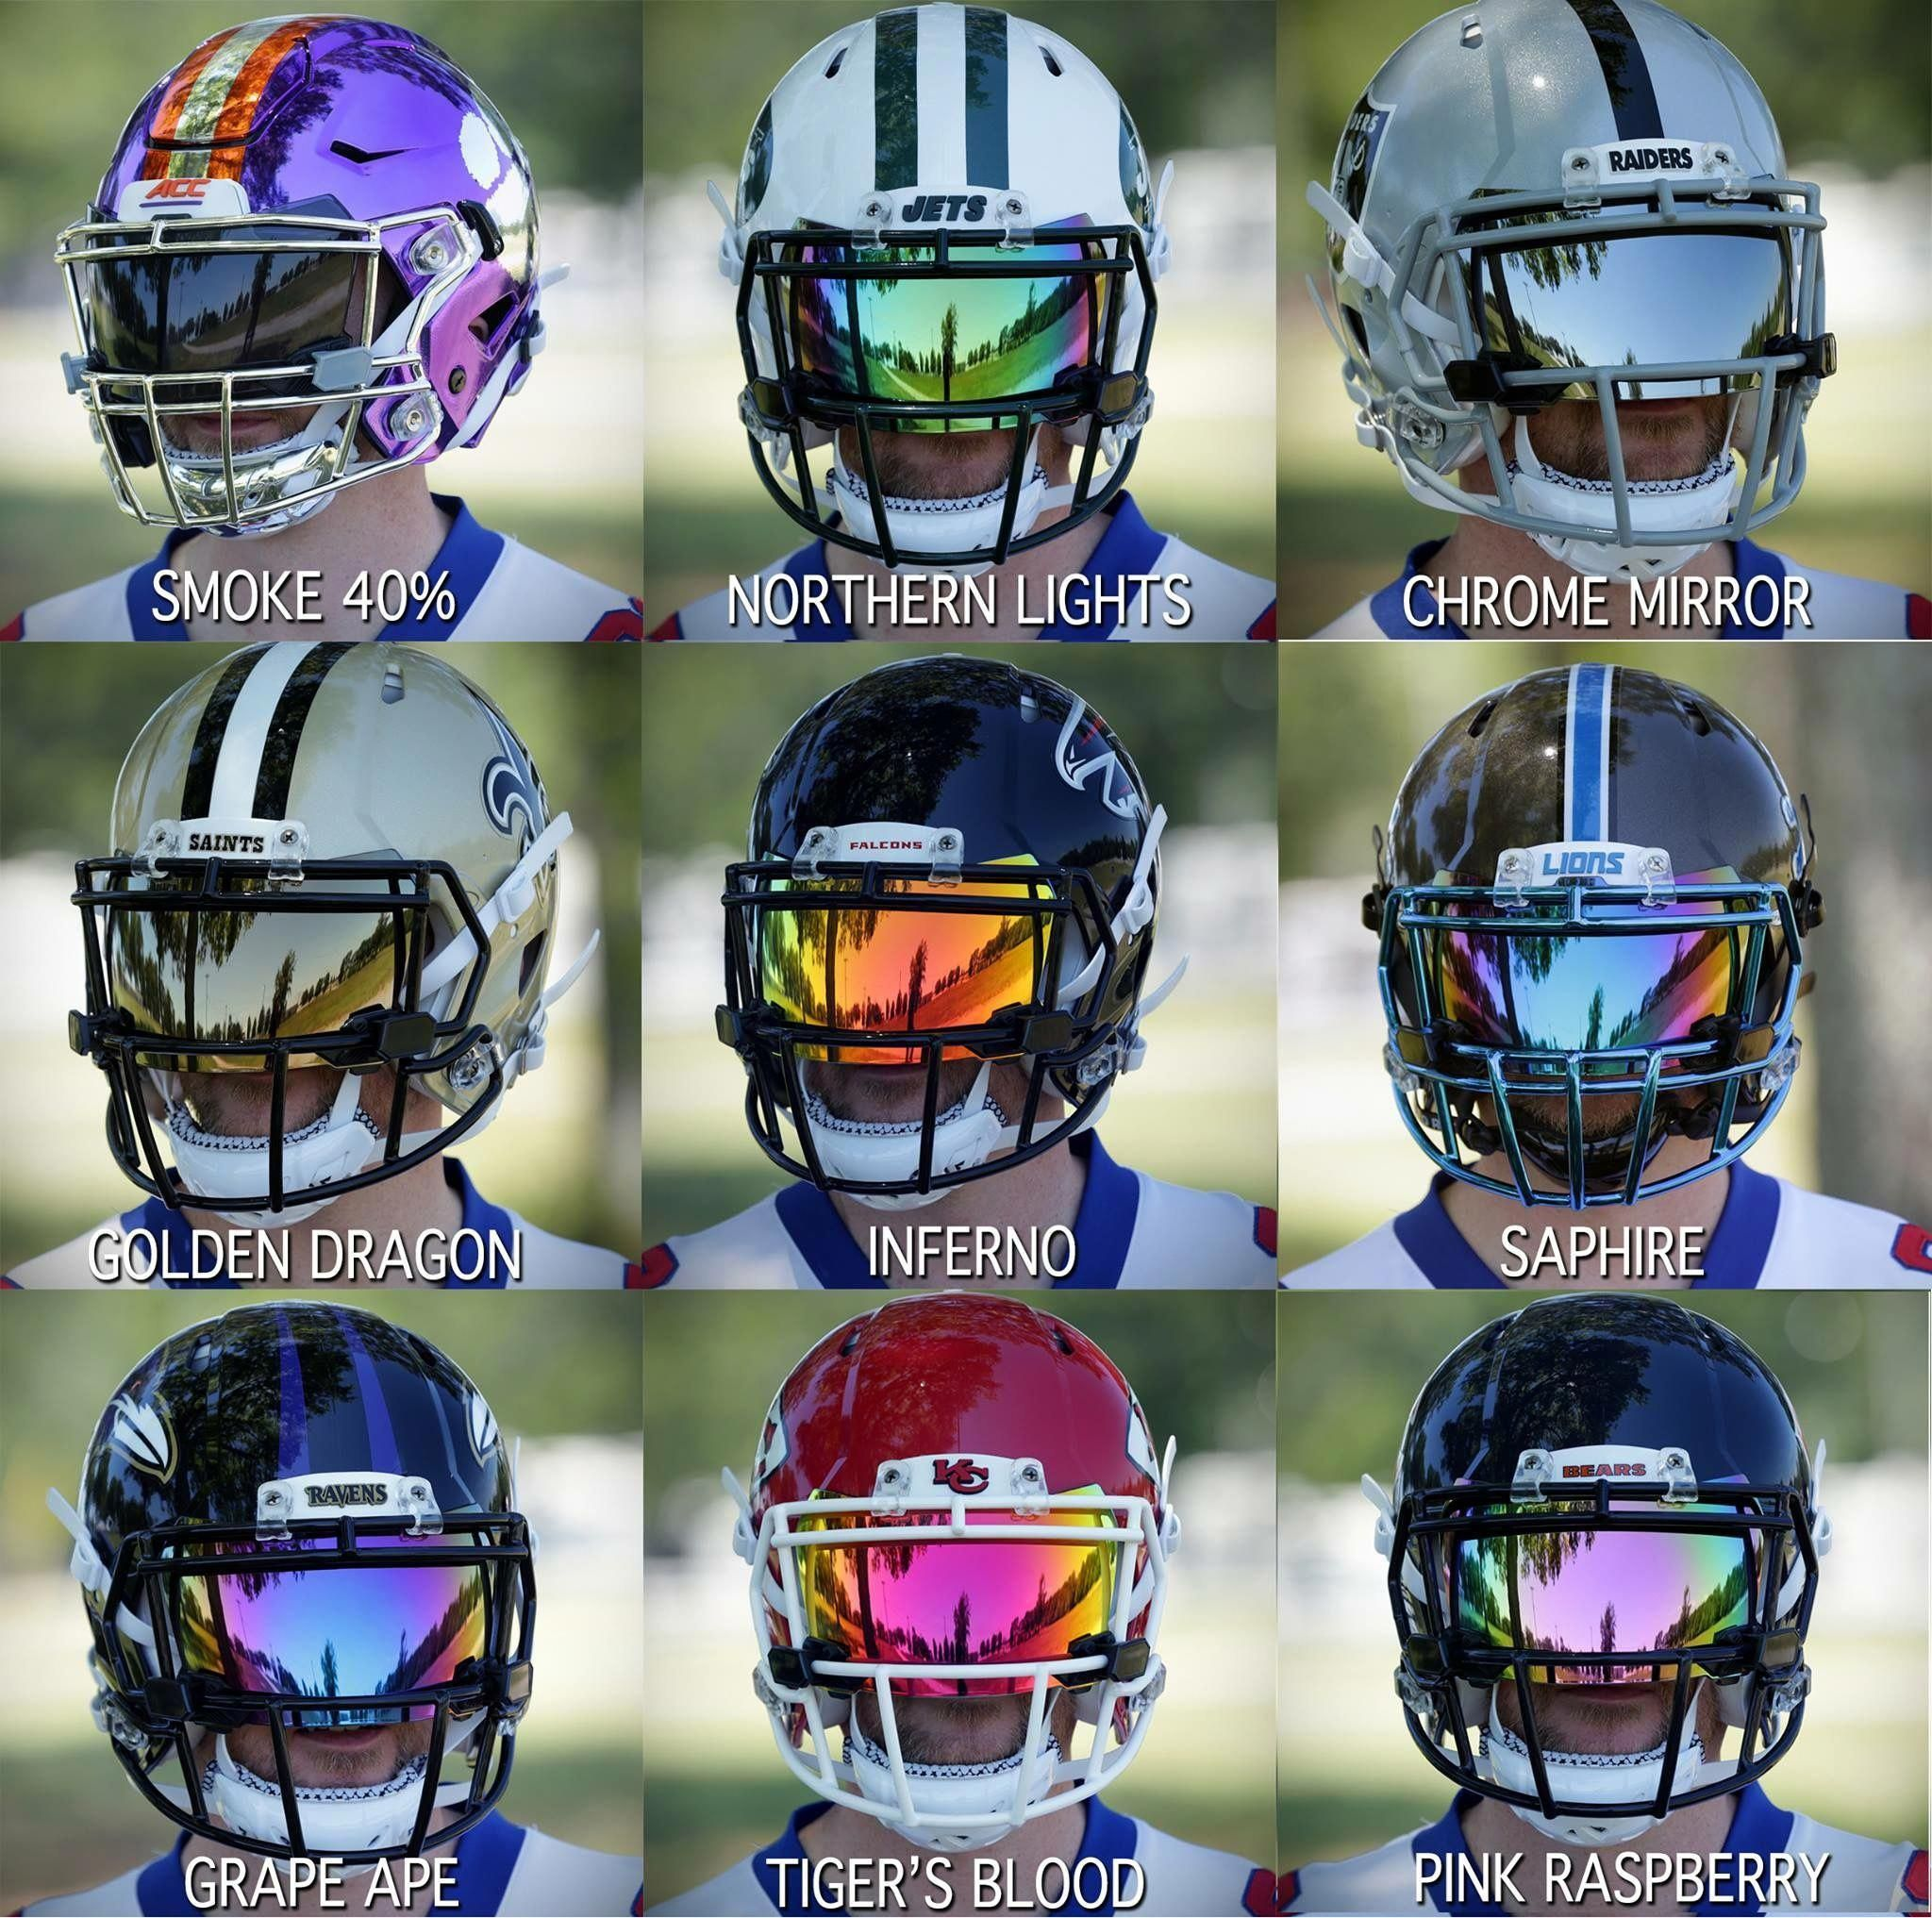 4bb18290 SHOC 2.0 Lightning Football visors will fit the most common helmets today  from Schutt Riddell Xenith and even the all new Vicis #footballtips